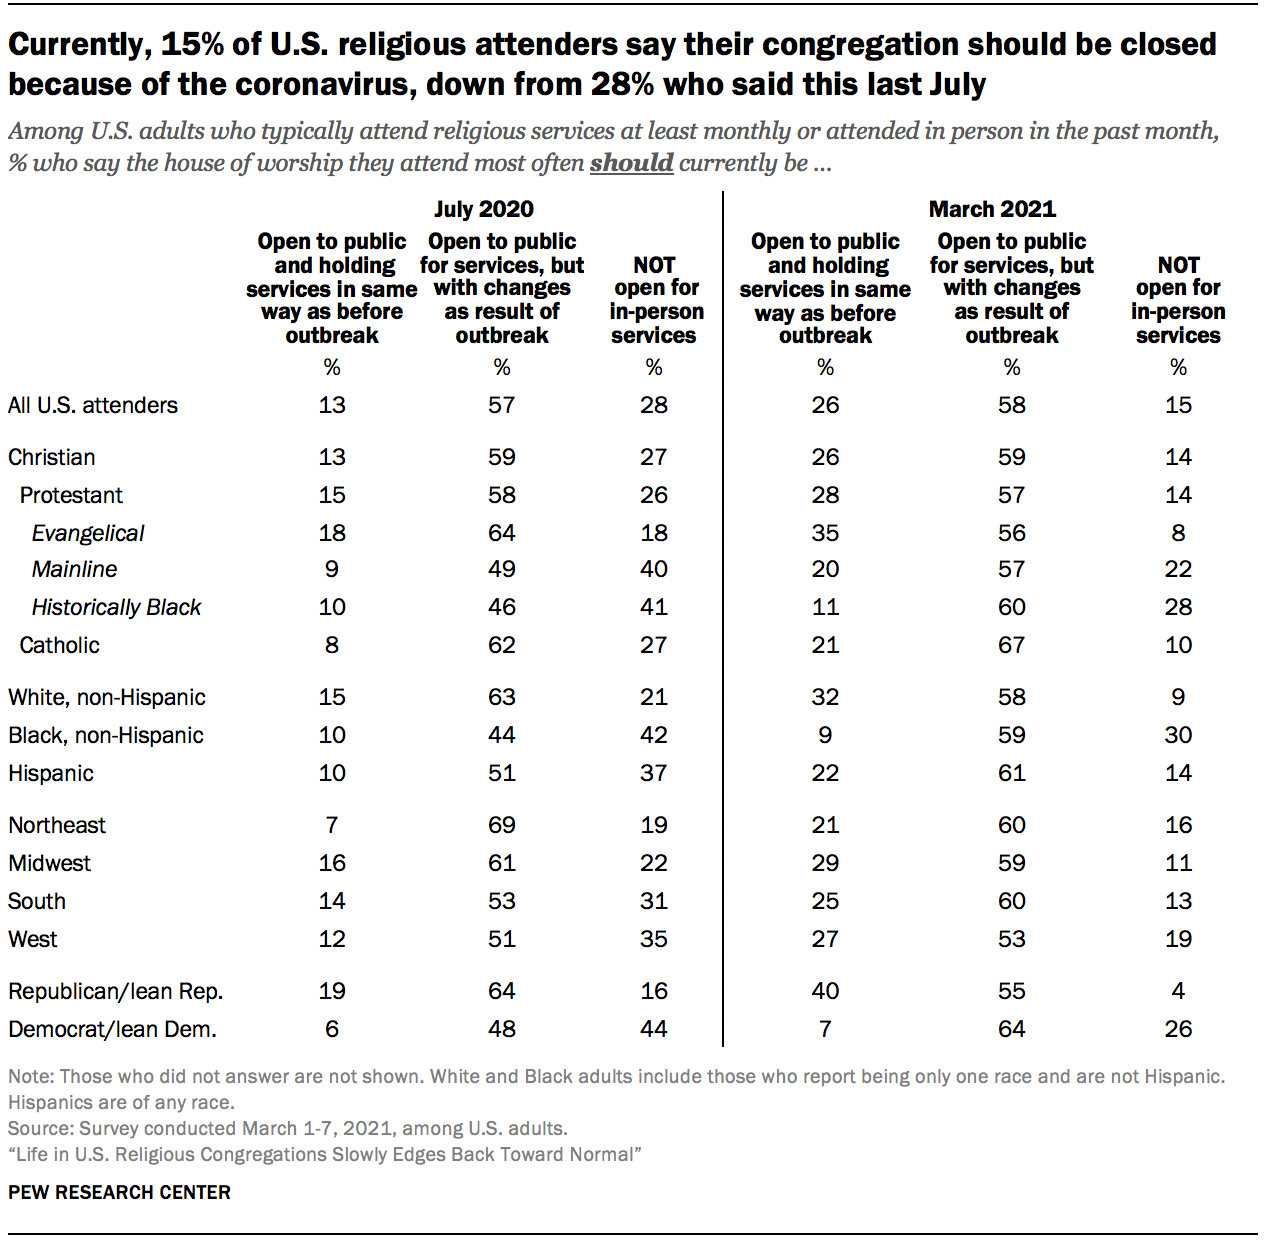 Currently, 15% of U.S. religious attenders say their congregation should be closed because of the coronavirus, down from 28% who said this last July